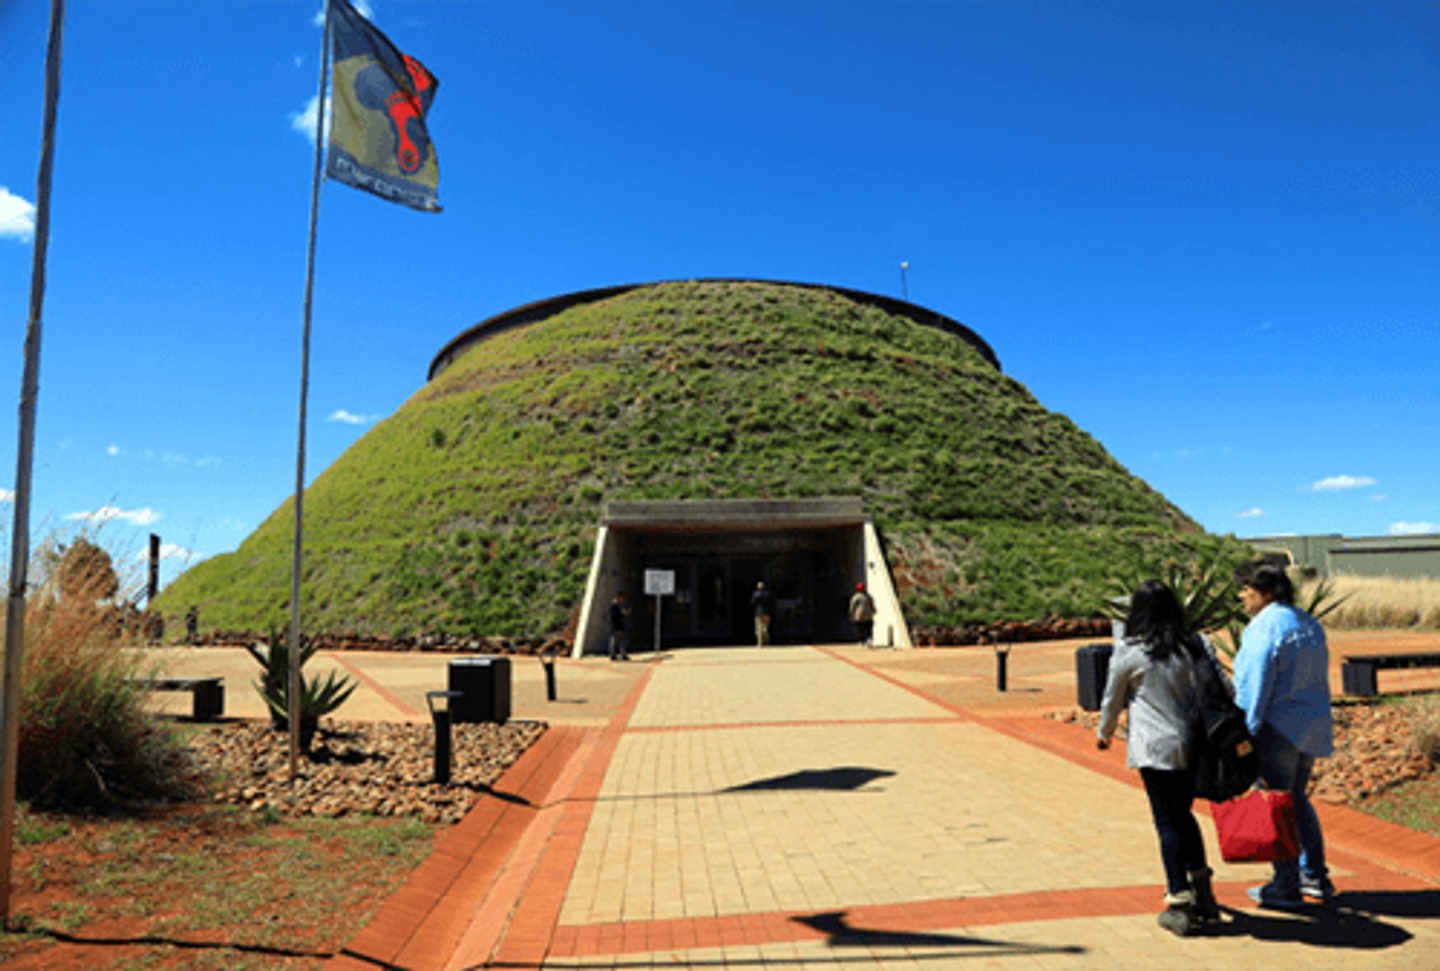 Maropeng & Sterkfontein Caves Day Tour.